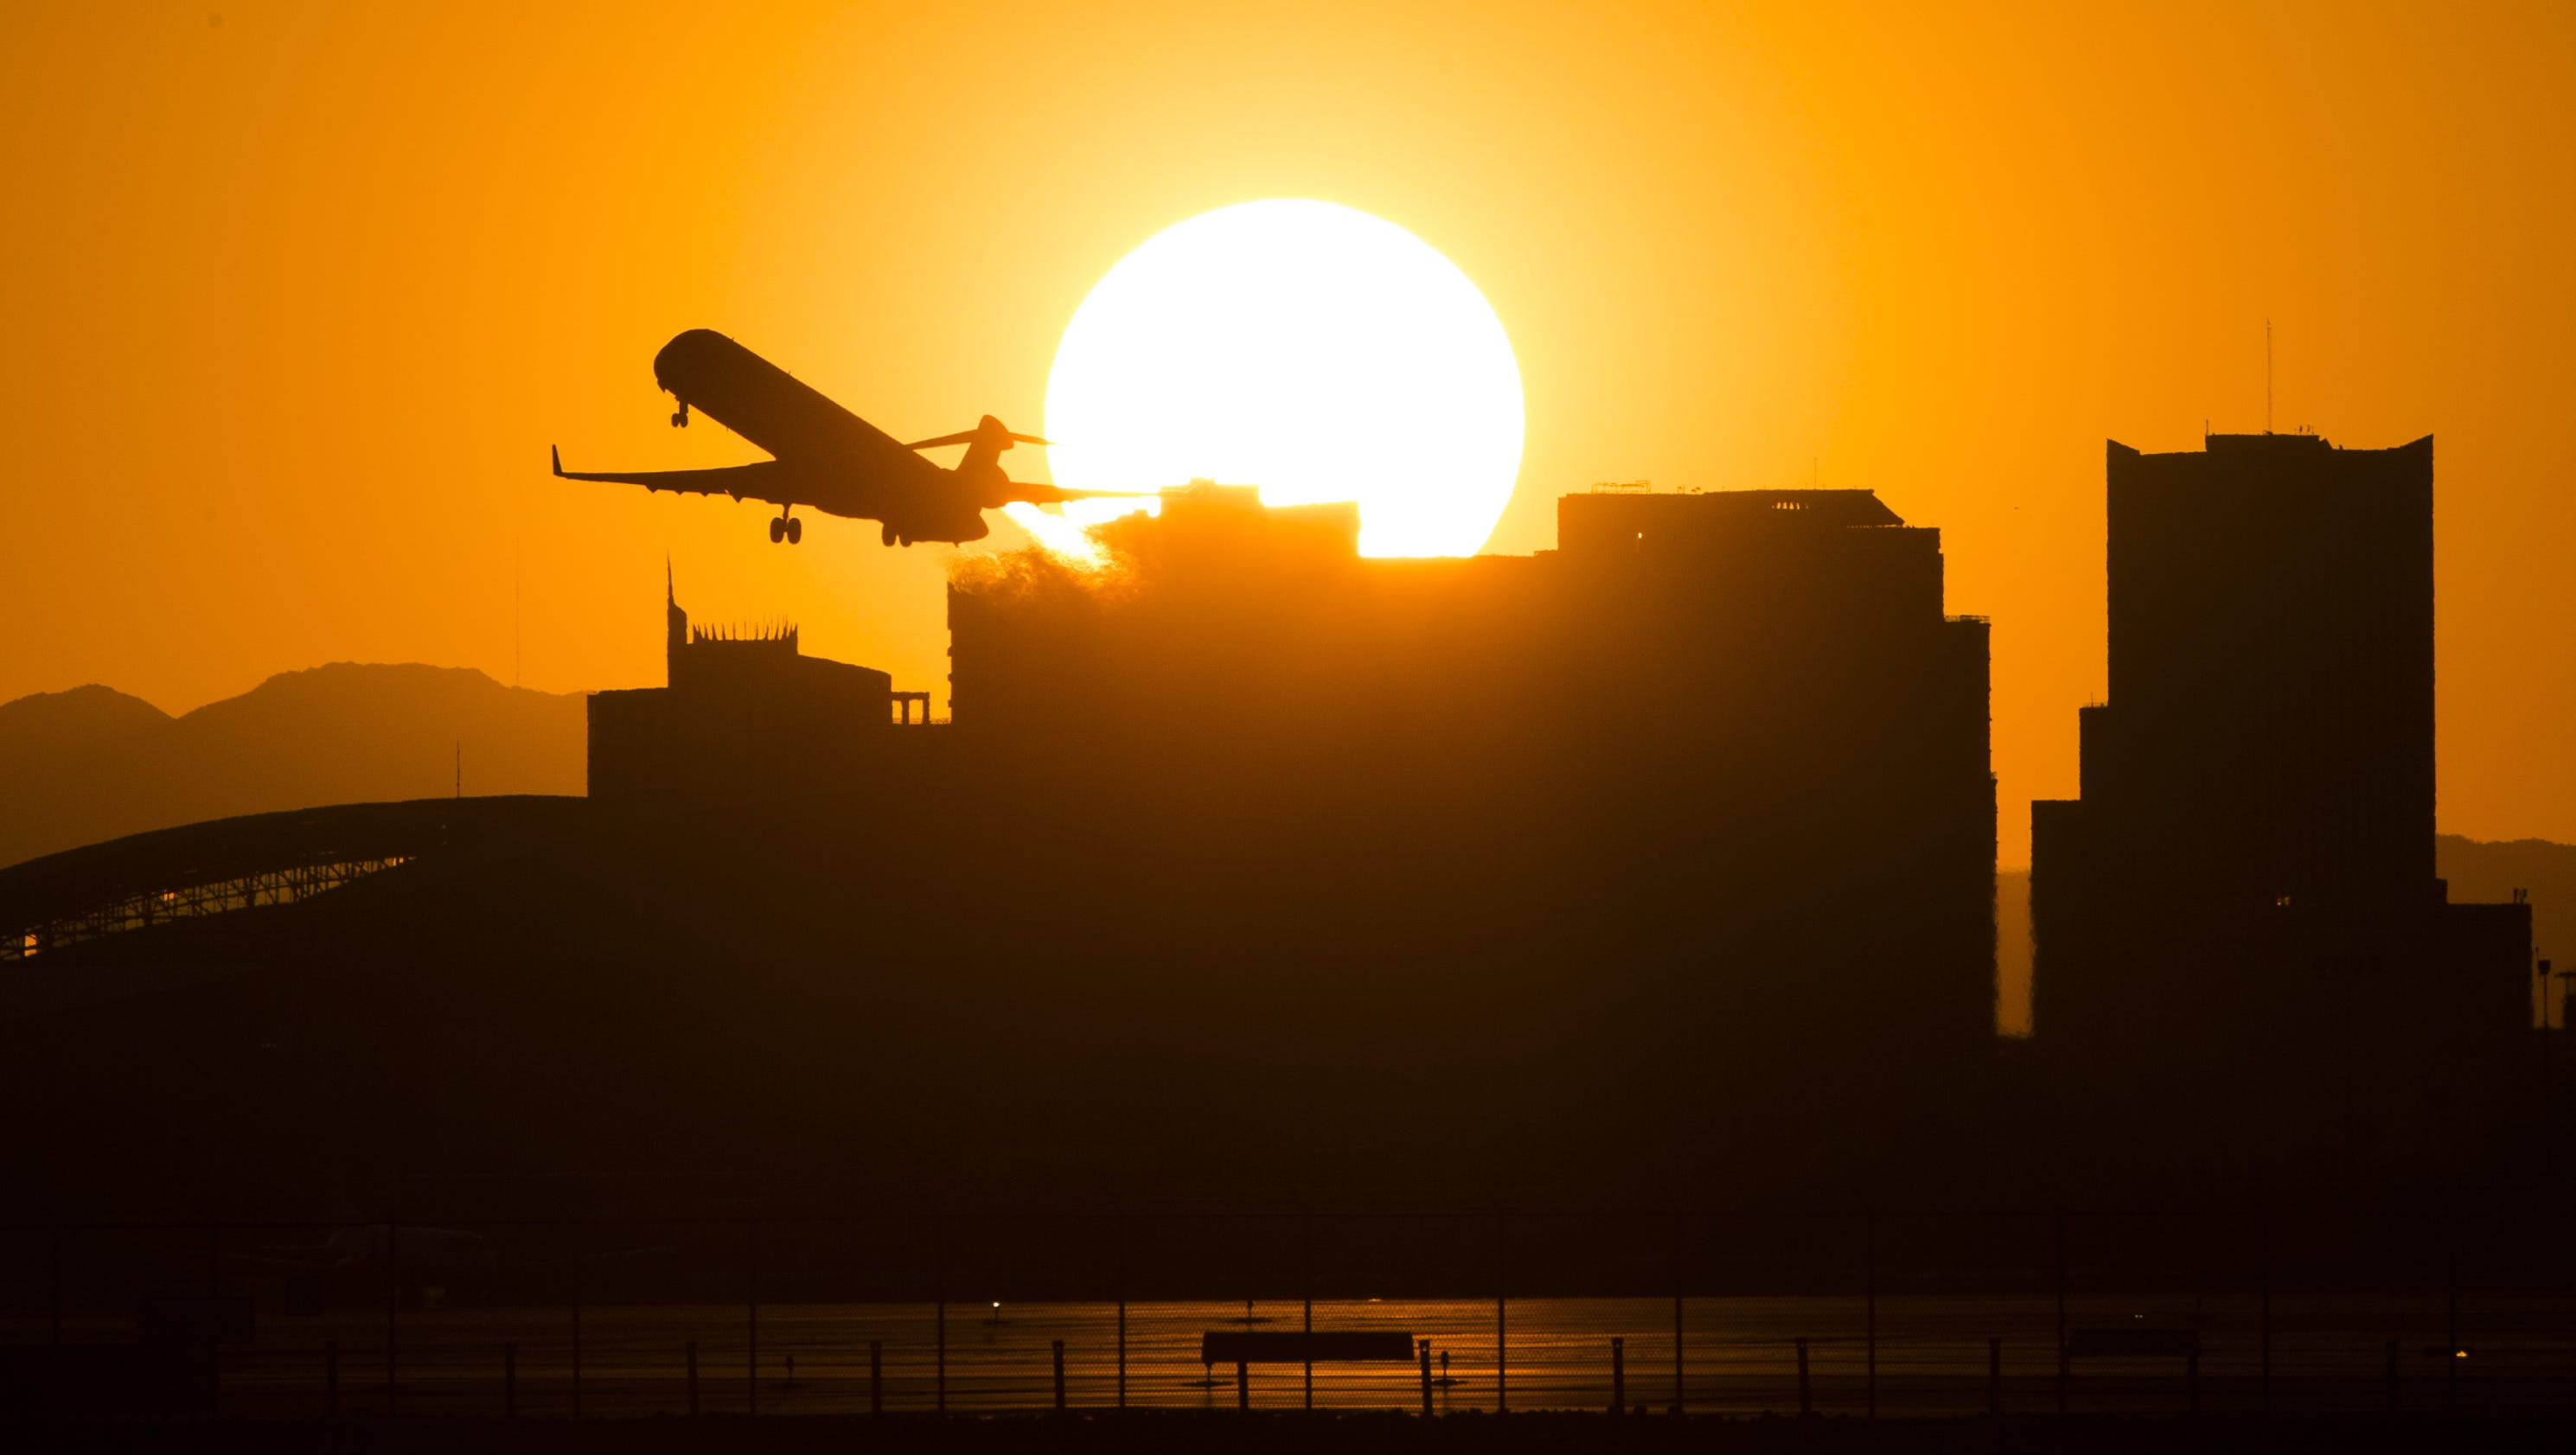 Lotto Gmx why the sky harbor flight path noise may drive you